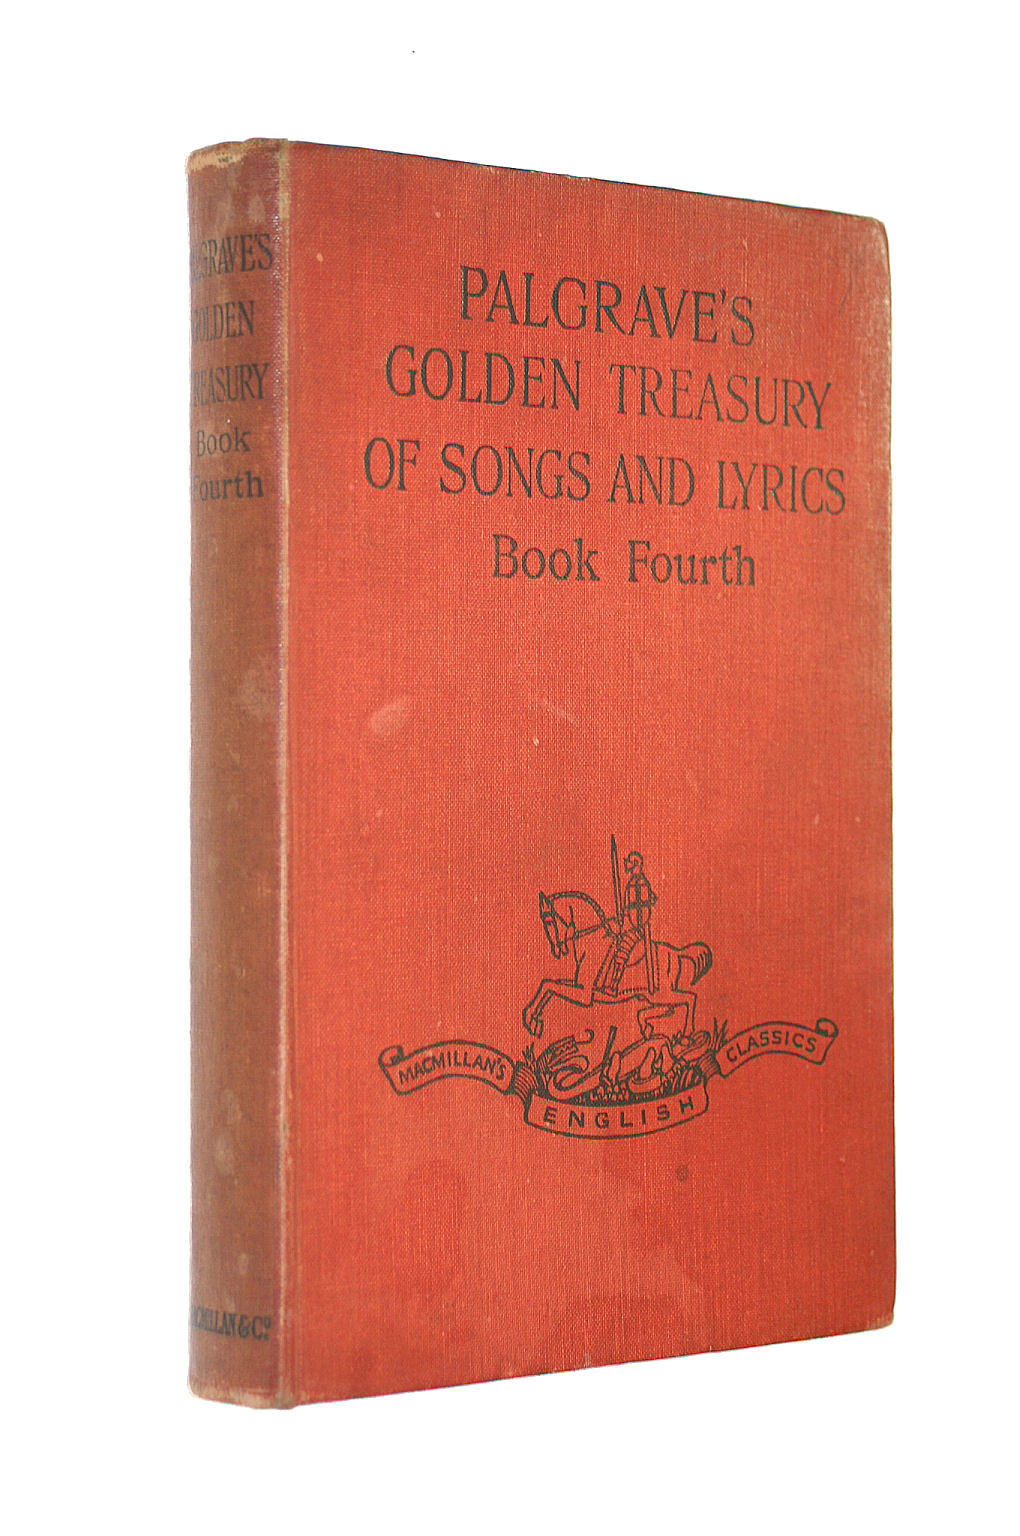 Image for Palgrave's Golden Treasury of Songs and Lyrics Book Fourth